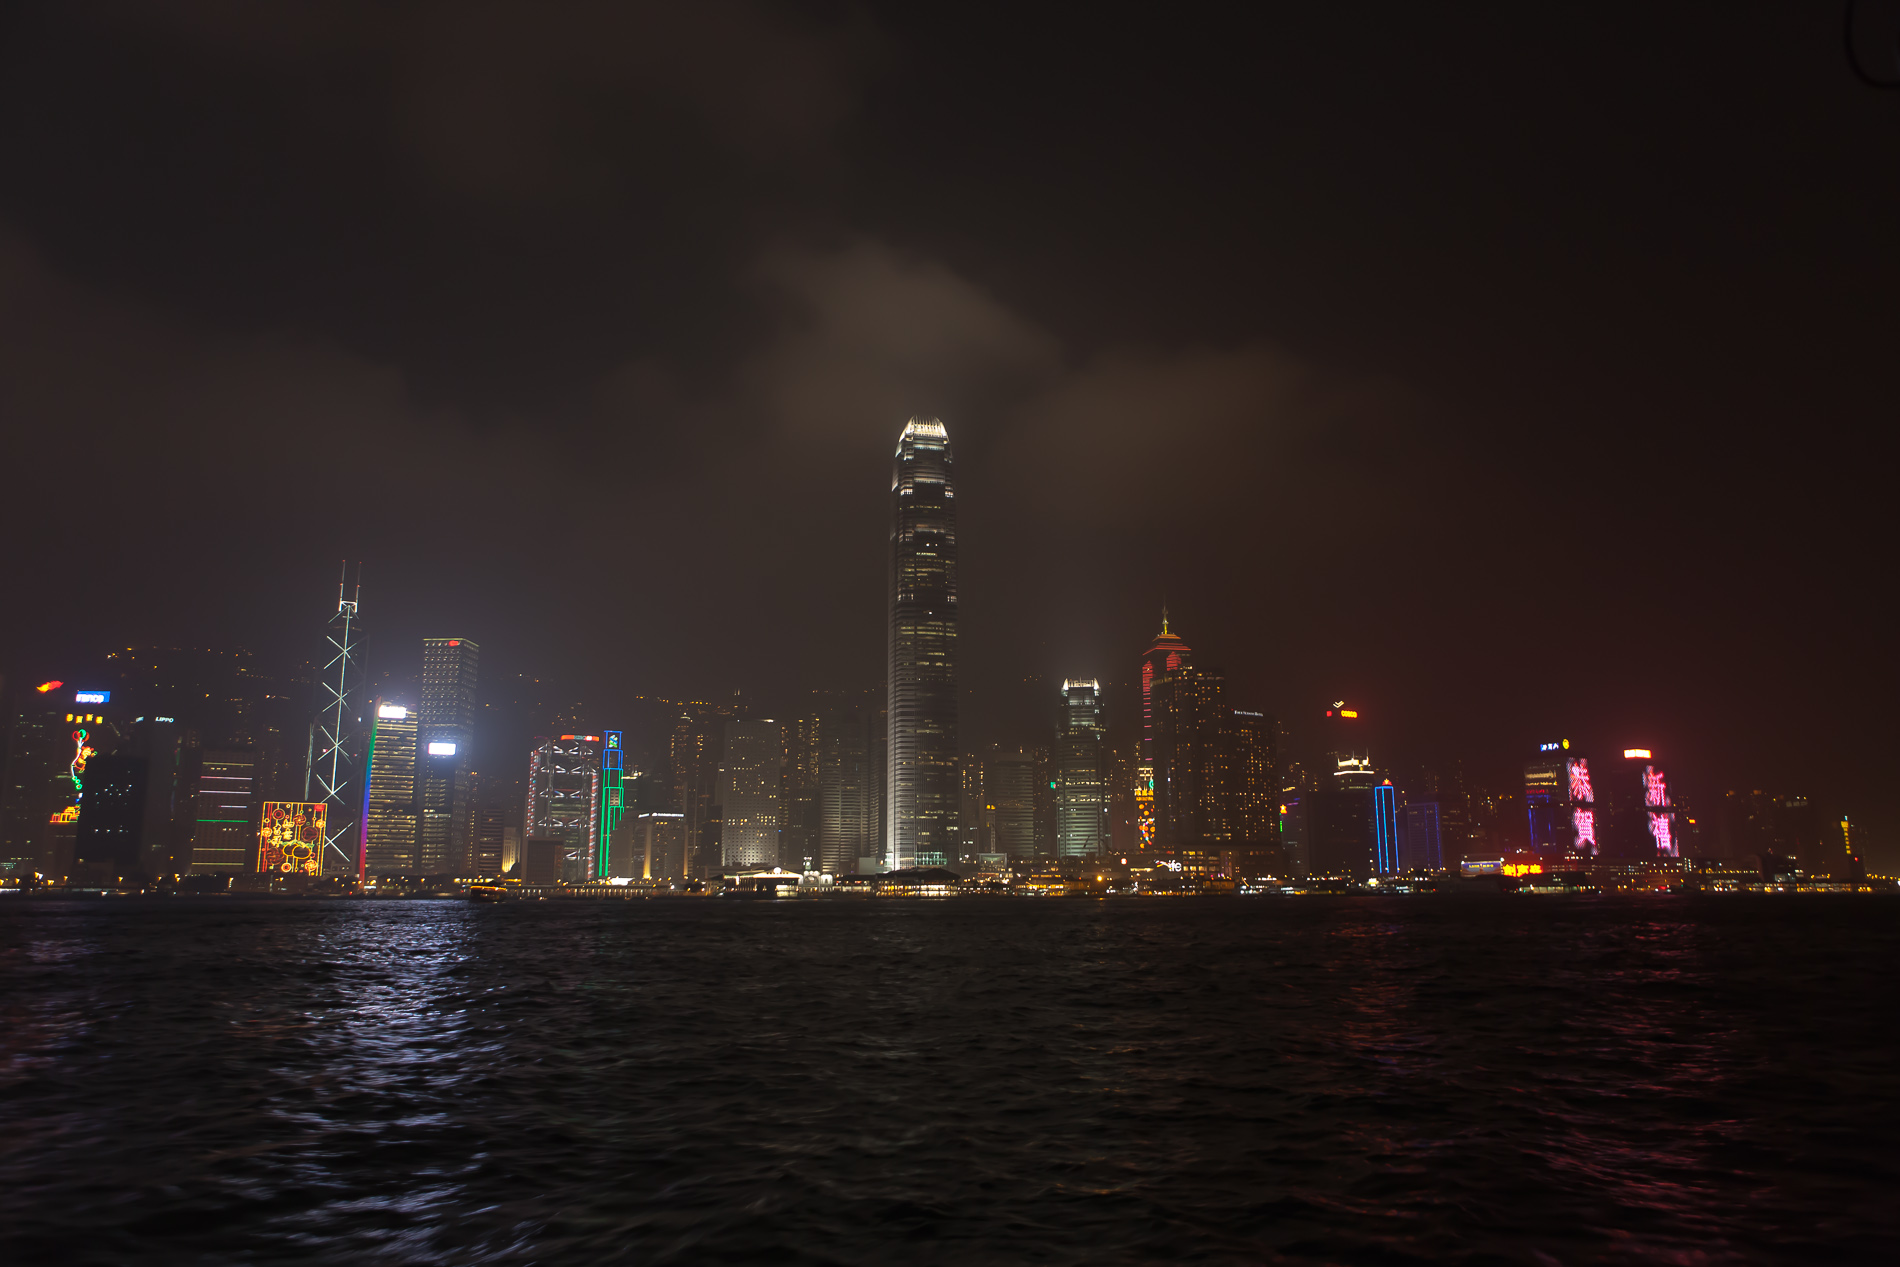 Hong Kong: Light and Laser Show at Victoria Harbour